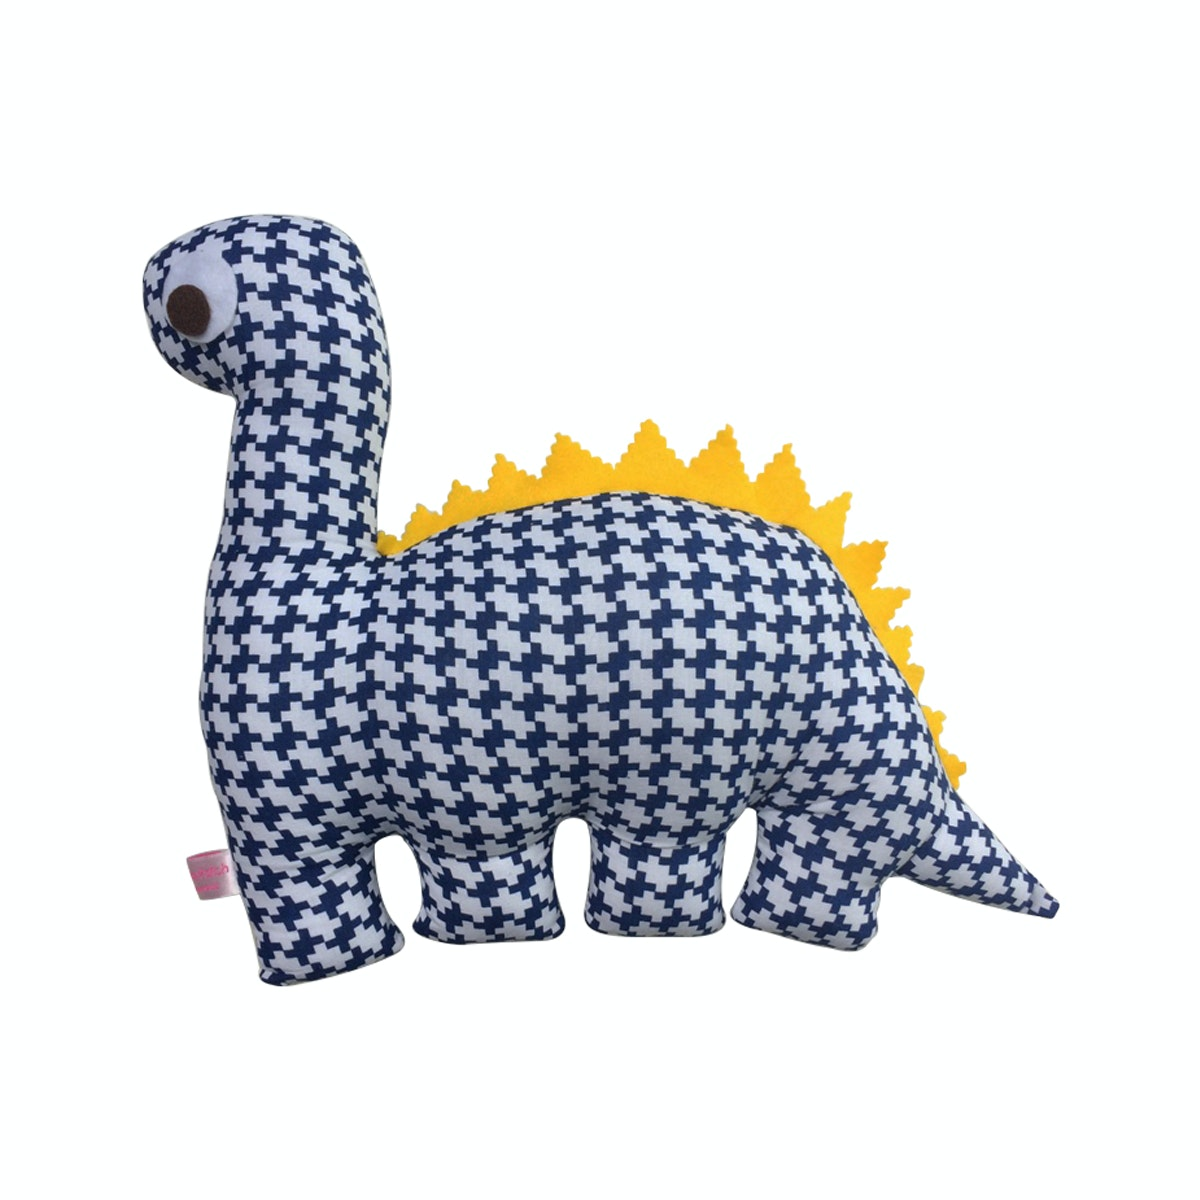 Strawberry Patch Dino Cushion Biru Tua